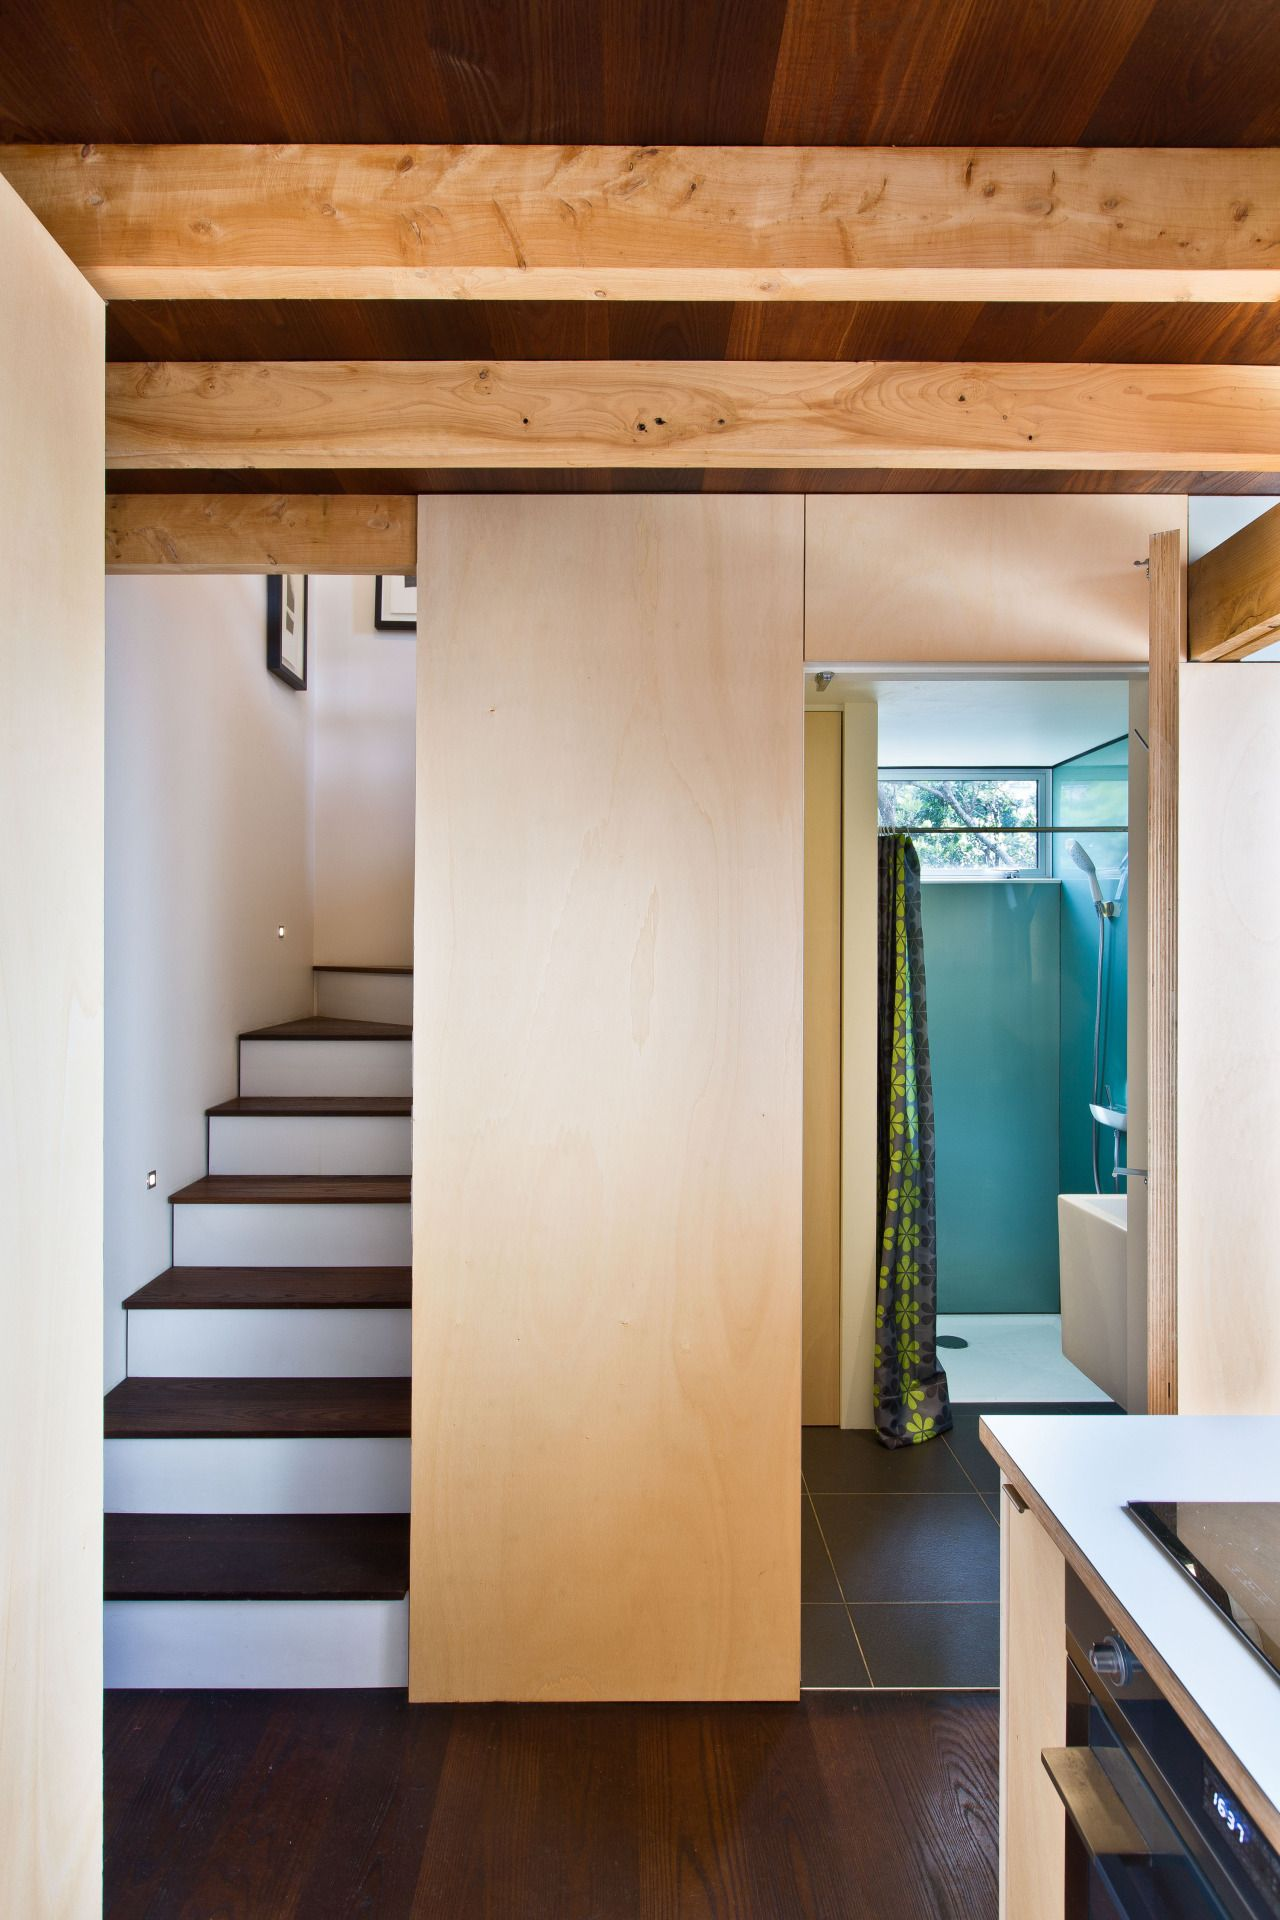 This small home in New Zealand is enormously clever